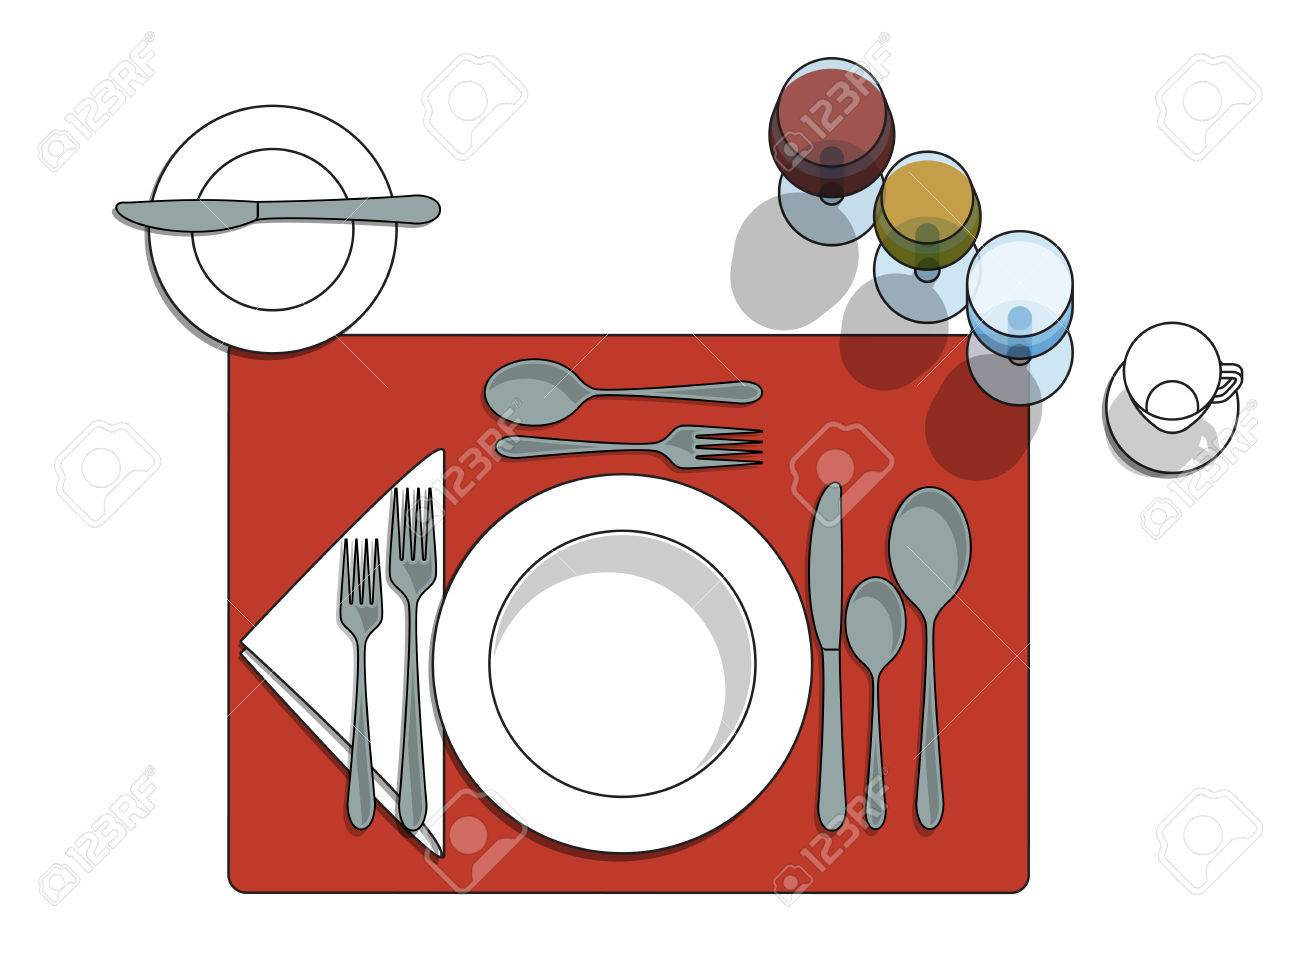 Table setting diagram with eating utensils cups placemat Stock Vector - 74818789  sc 1 st  123RF.com & Table Setting Diagram With Eating Utensils Cups Placemat Royalty ...